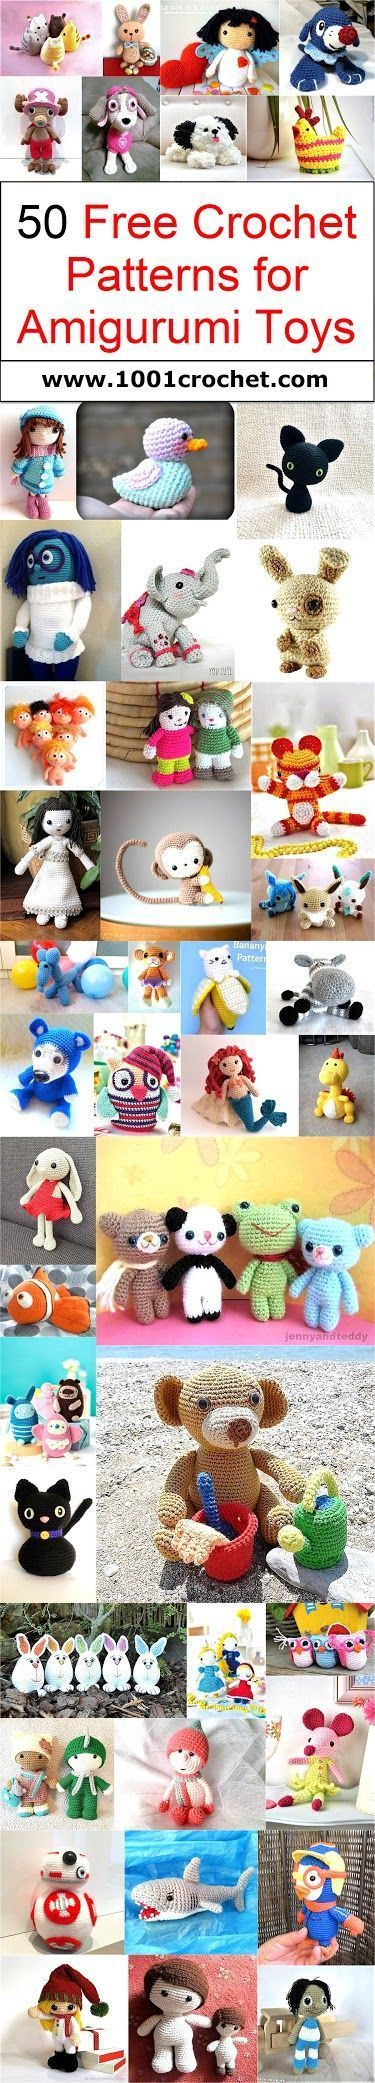 50 Free Crochet Patterns For Amigurumi Toys Free Crochet